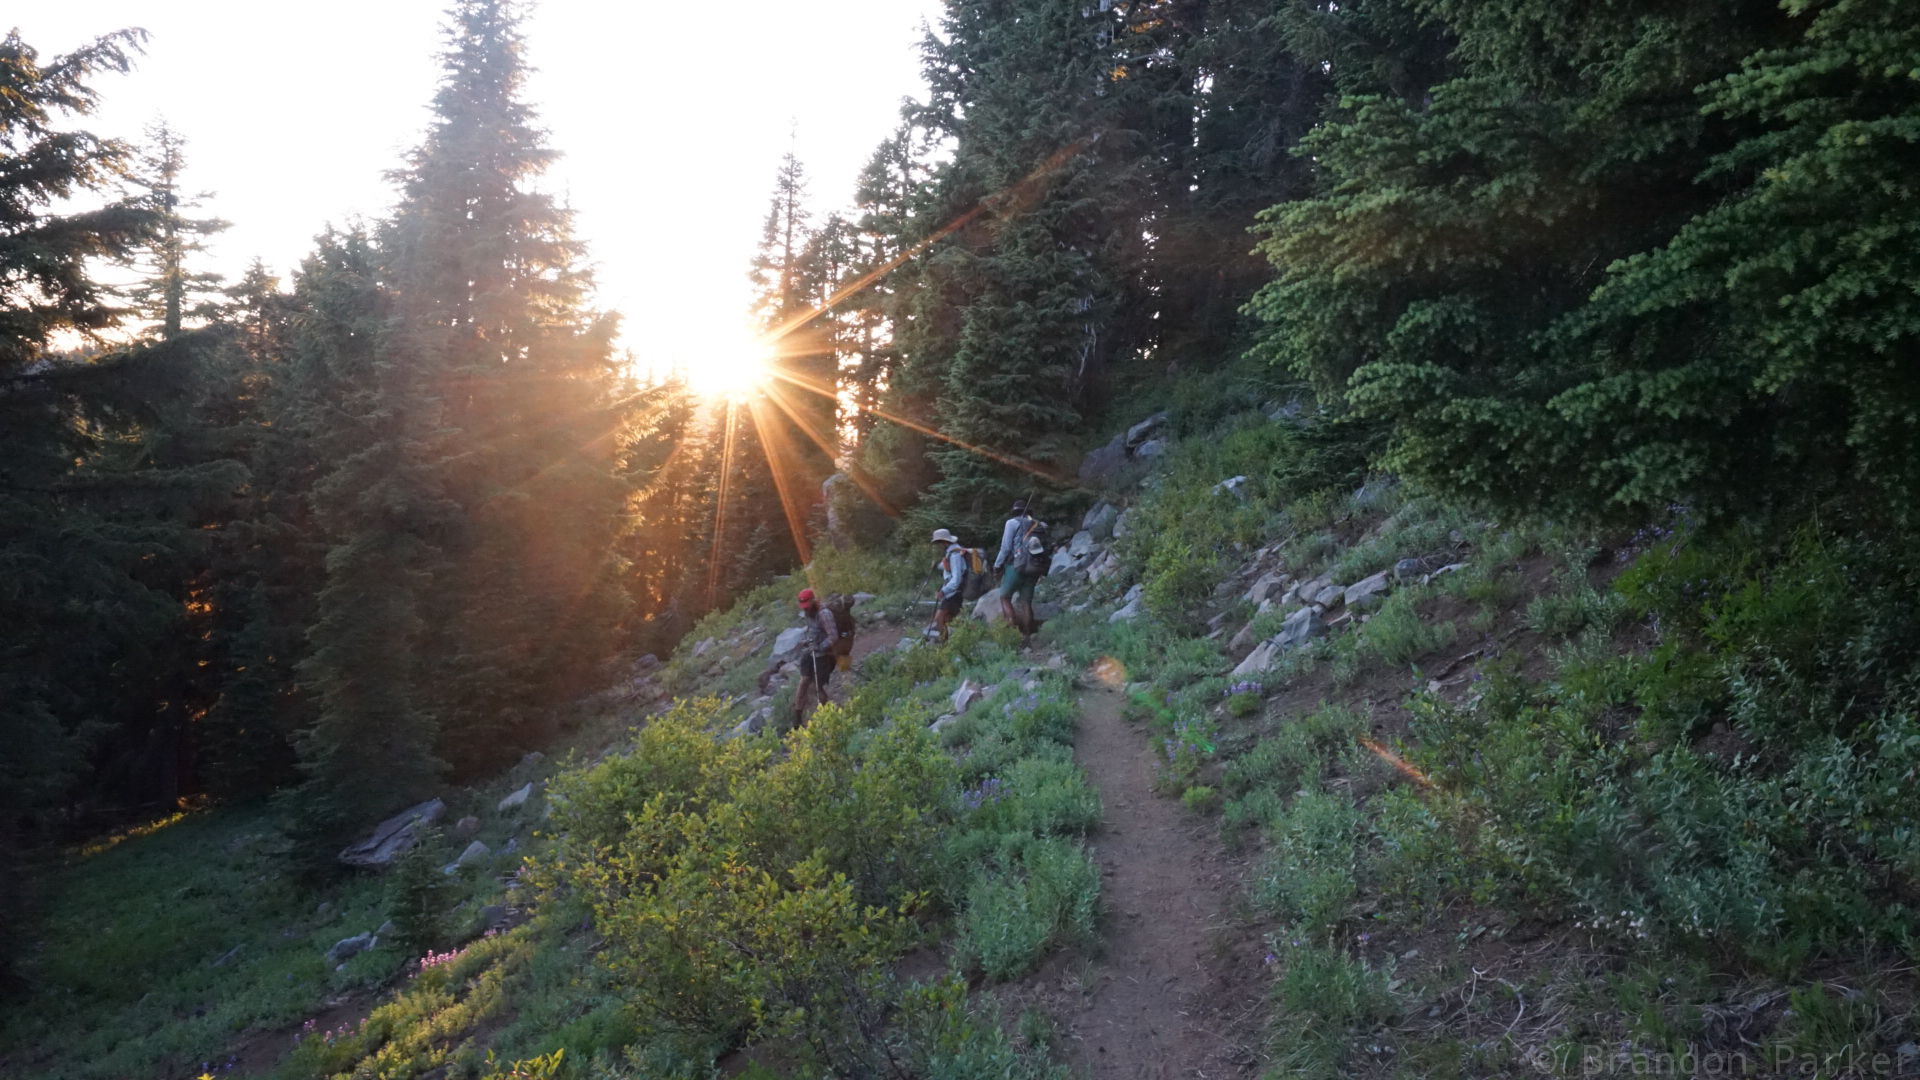 Hiking in the late afternoon sun